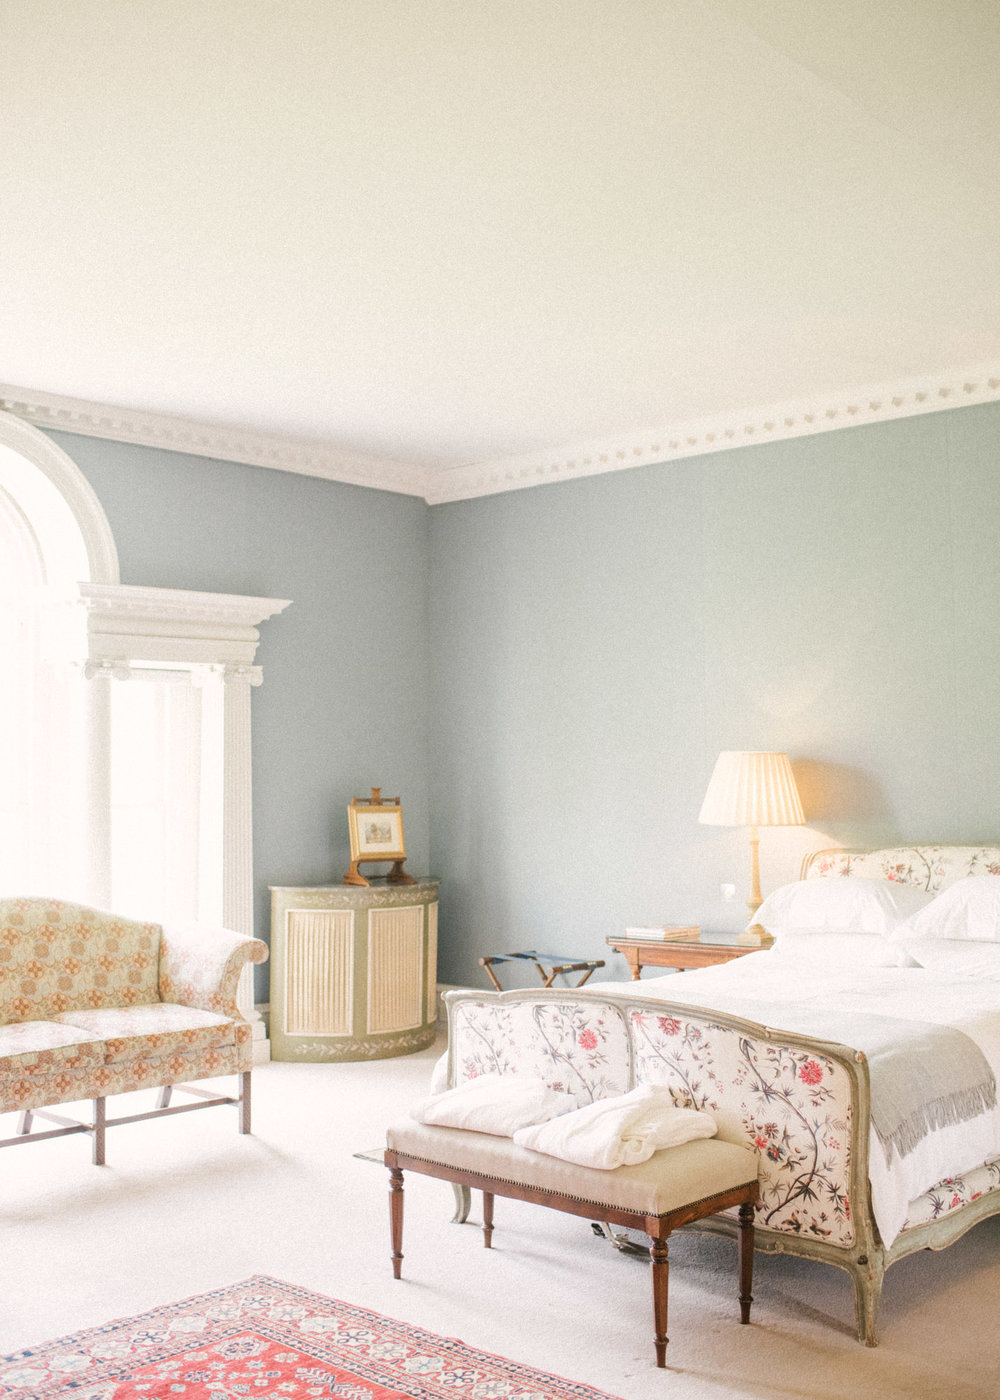 Boconnoc Cornwall Wedding Venue with Bedrooms-Stately Home Wedding-The Timeless Stylist-Wedding Styling and Coordination